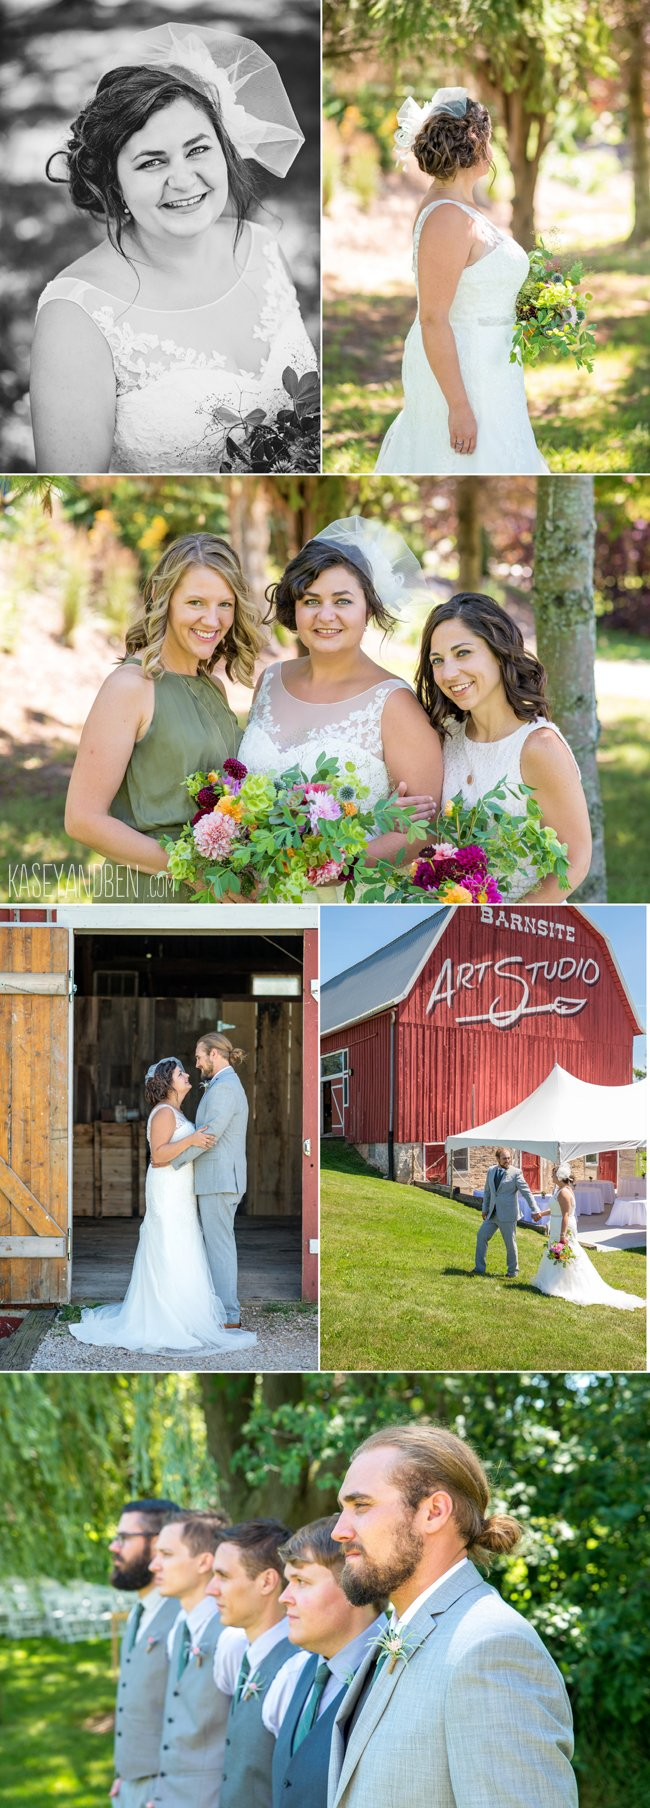 kewaunee-barnsite-wedding-photography-green-bay-photographer-rustic-summer-barn-outside-wisconsin-lake-michigan-waterfront-2